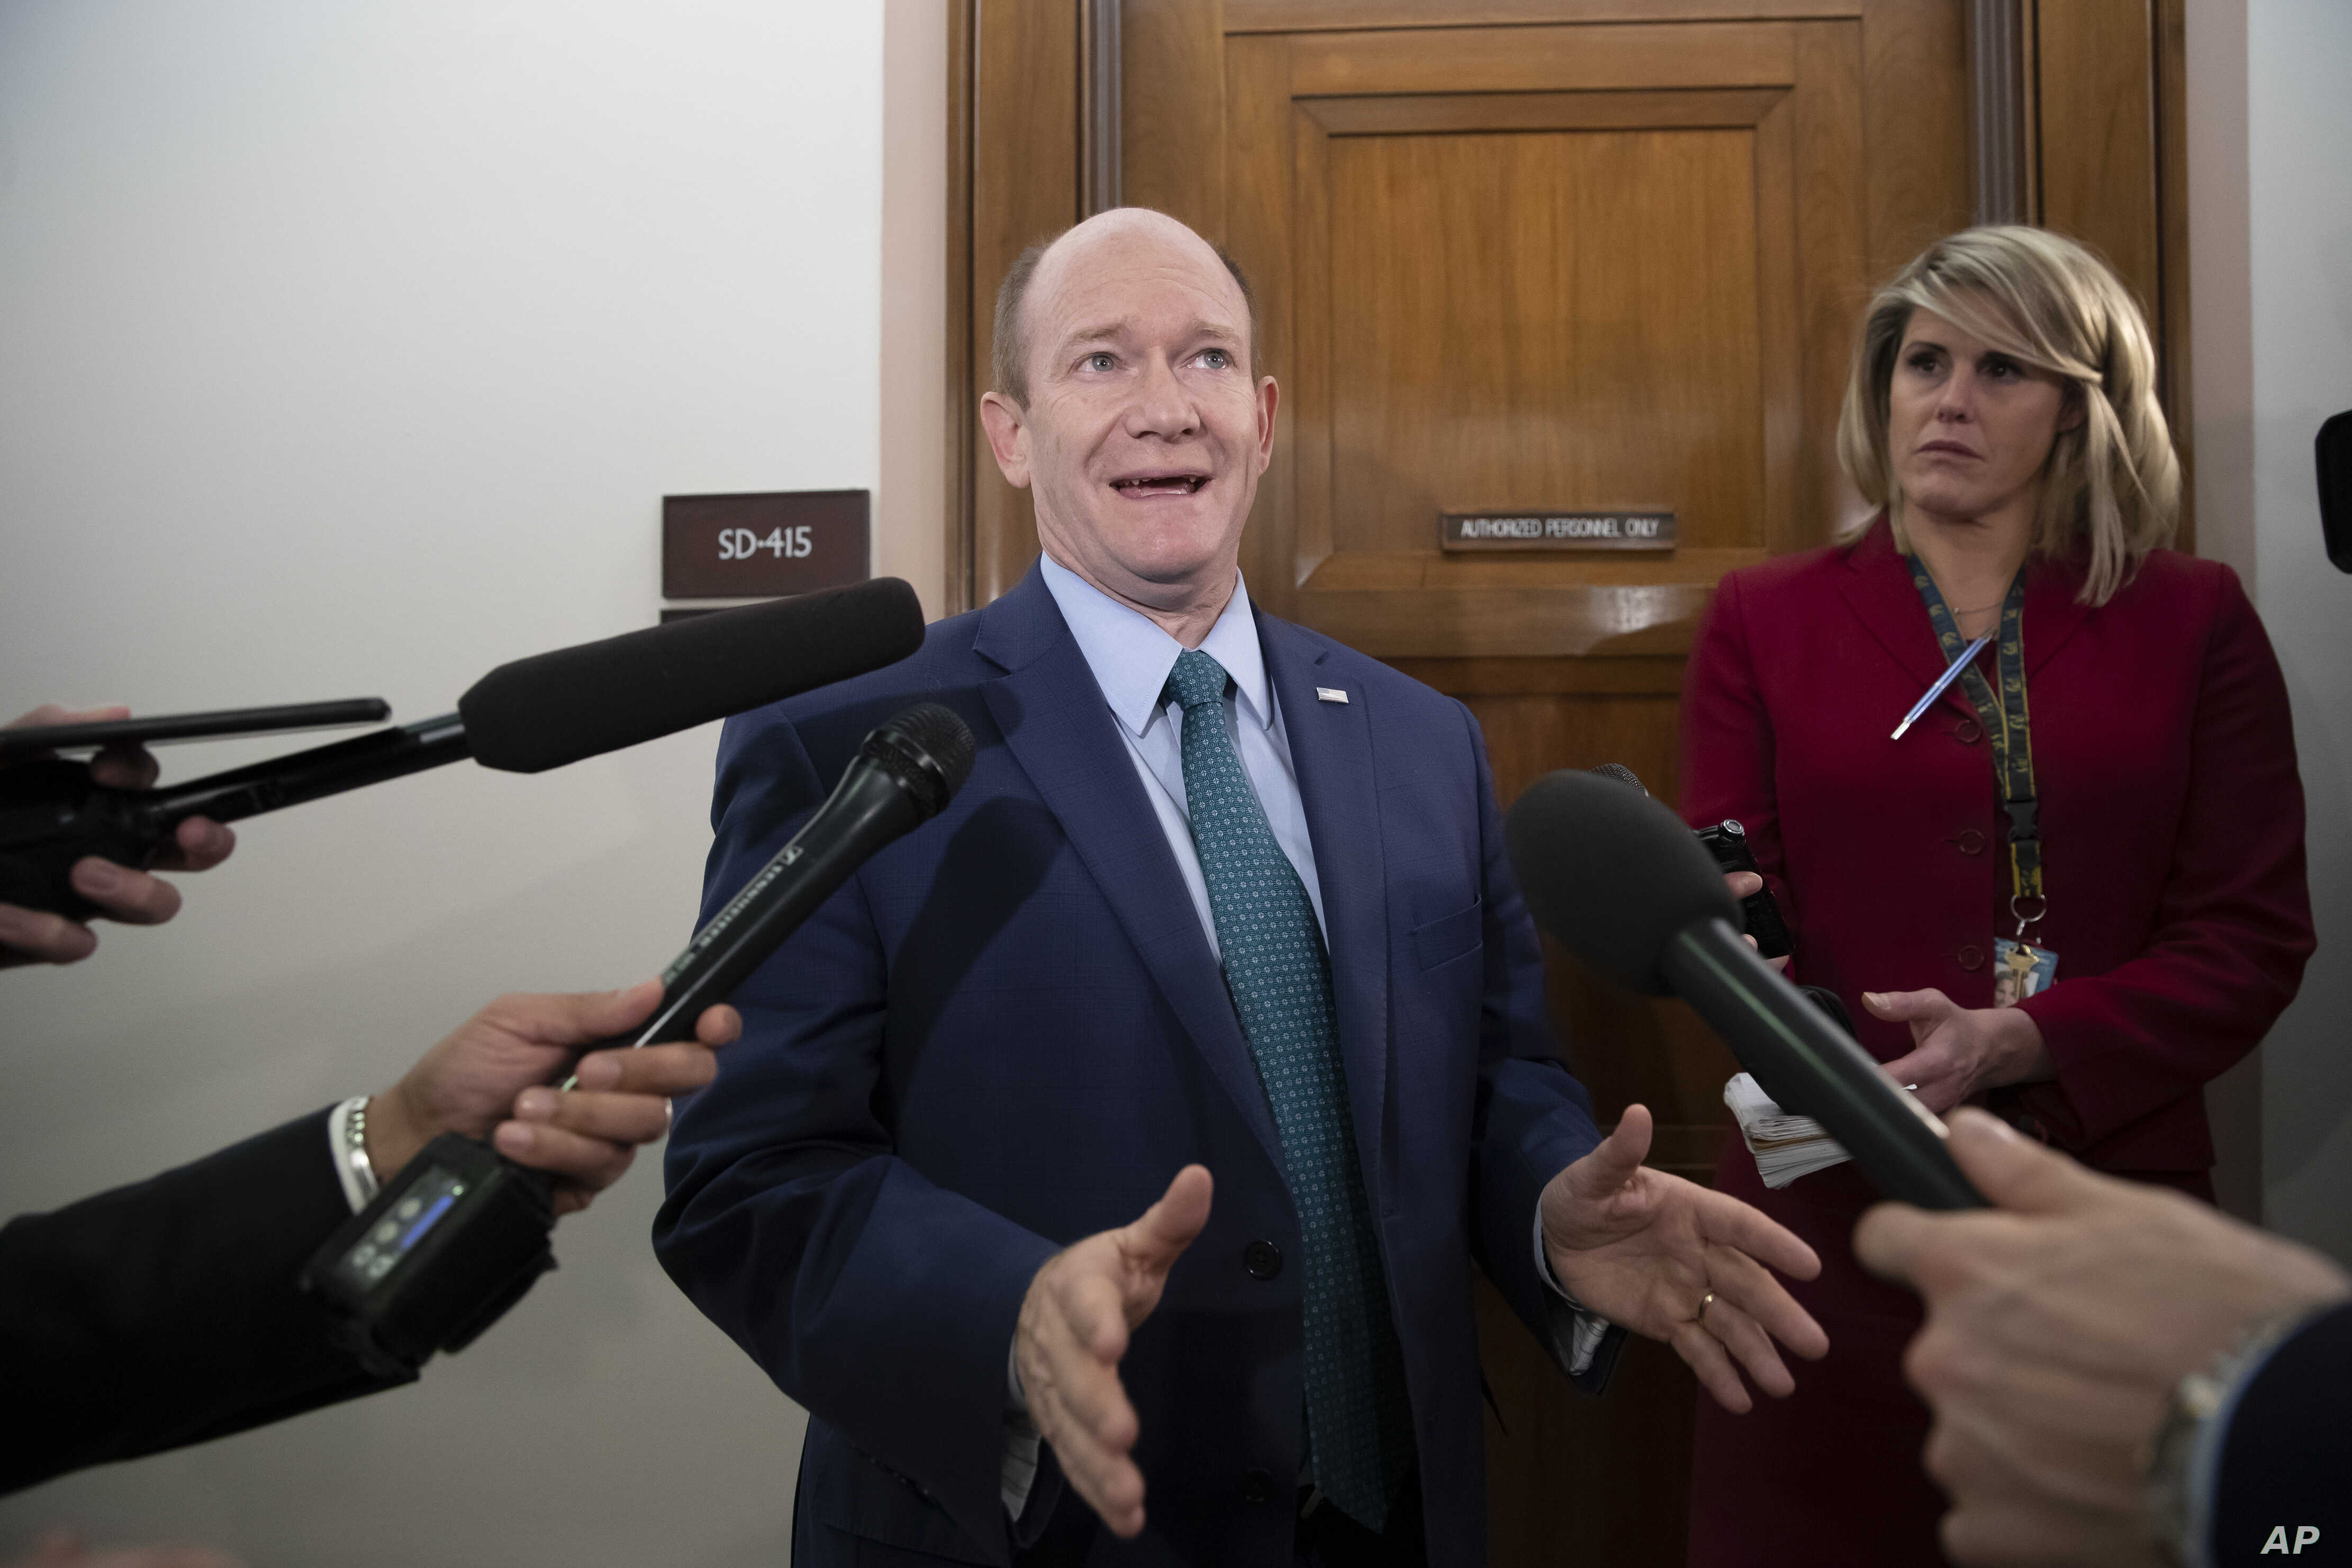 Sen. Chris Coons, D-Del., a member of the Senate Foreign Relations Committee, speaks with reporters as senators are considering multiple pieces of legislation in an effort to formally rebuke Saudi Arabia for the slaying of journalist Jamal Khashoggi,...